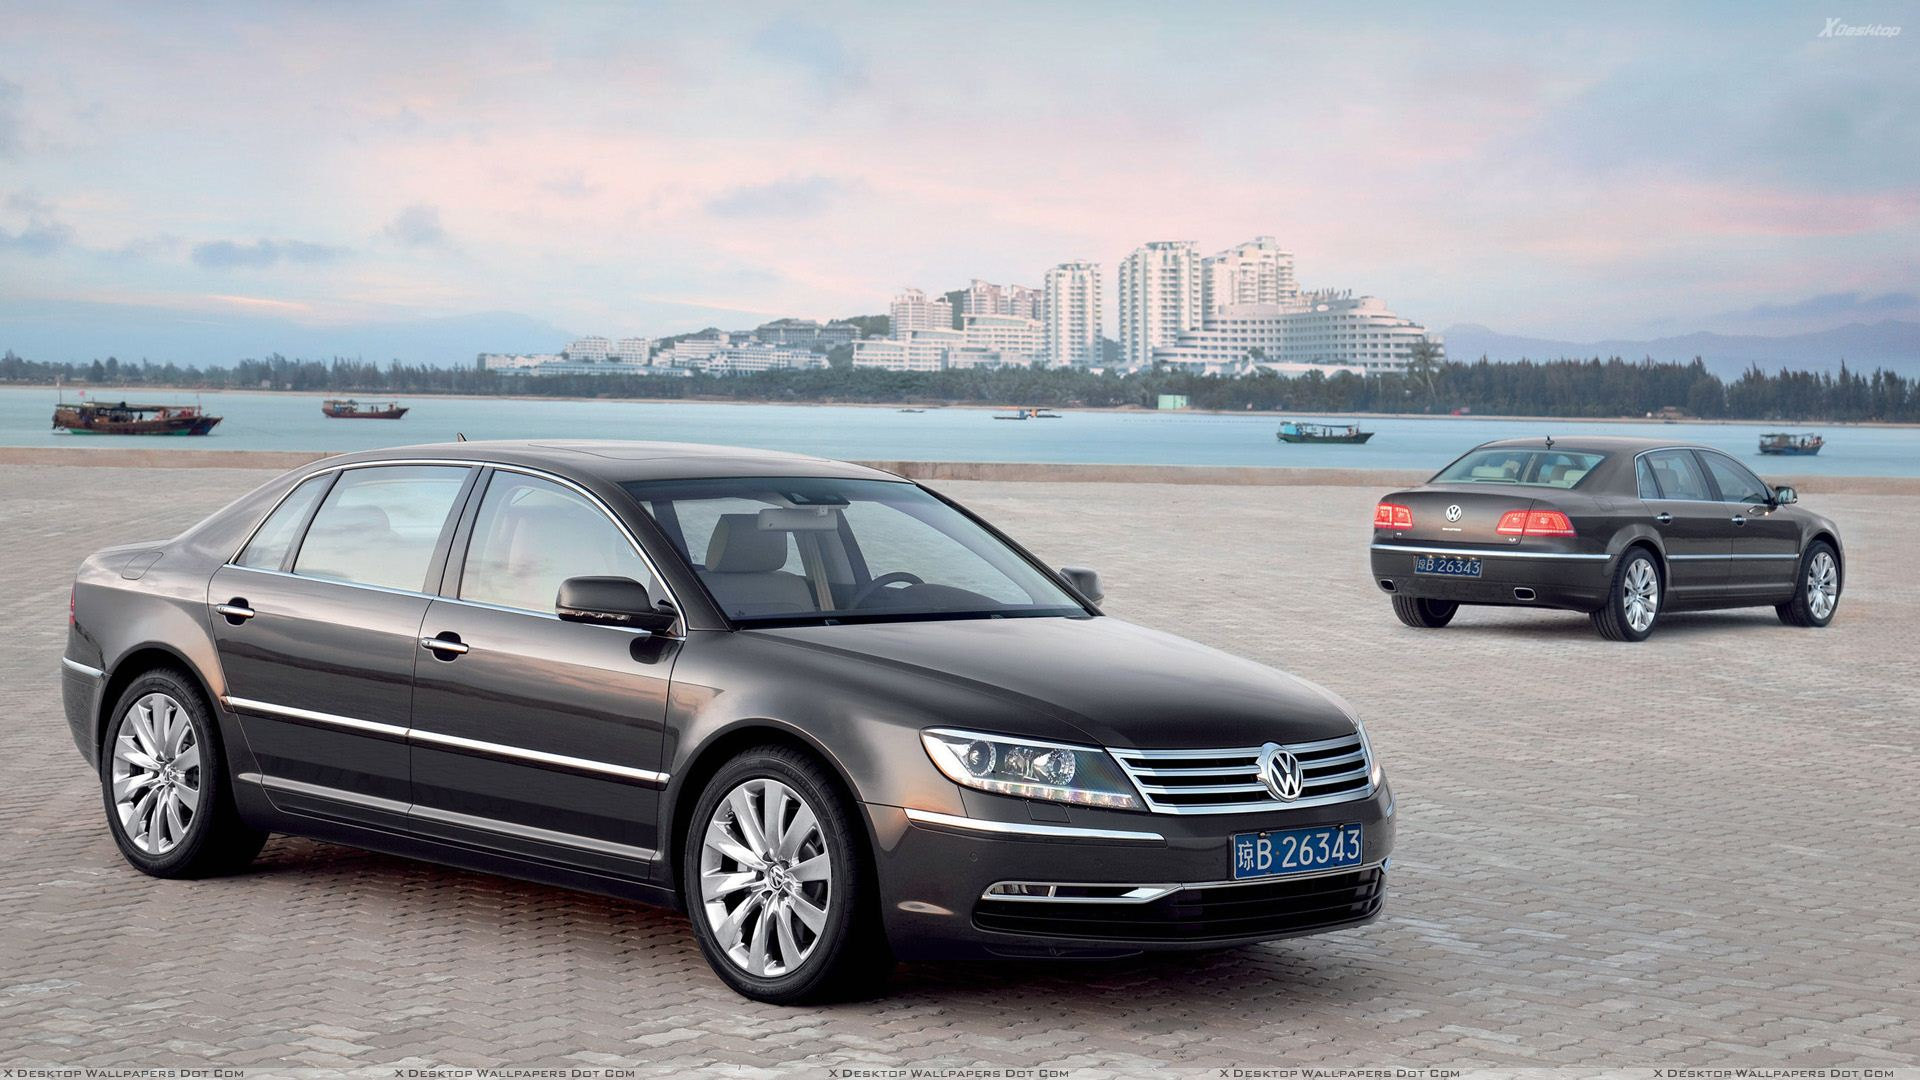 Volkswagen Phaeton Wallpapers Photos Images In Hd